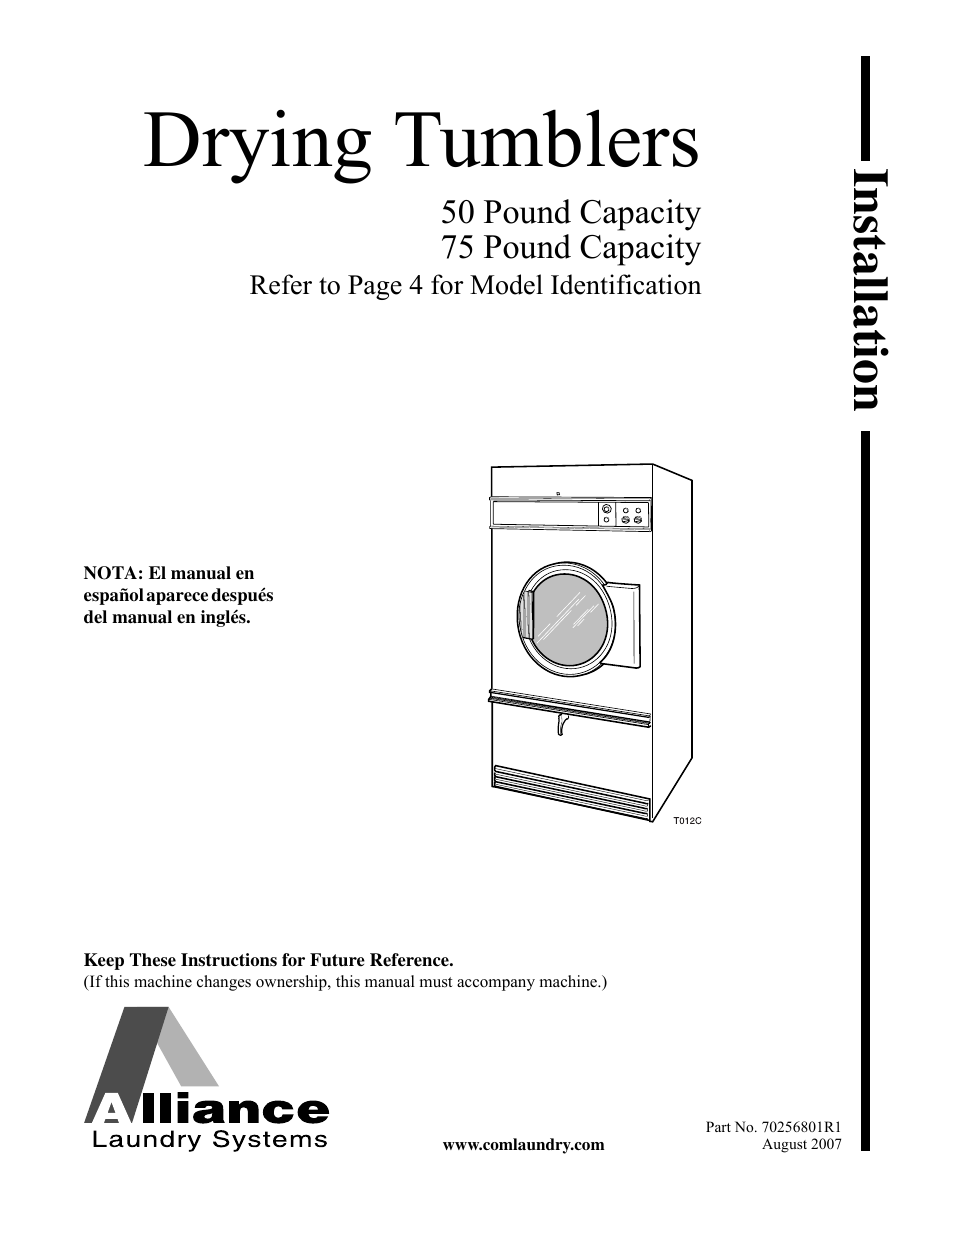 Speed queen drying tumblers none user manual 60 pages publicscrutiny Gallery